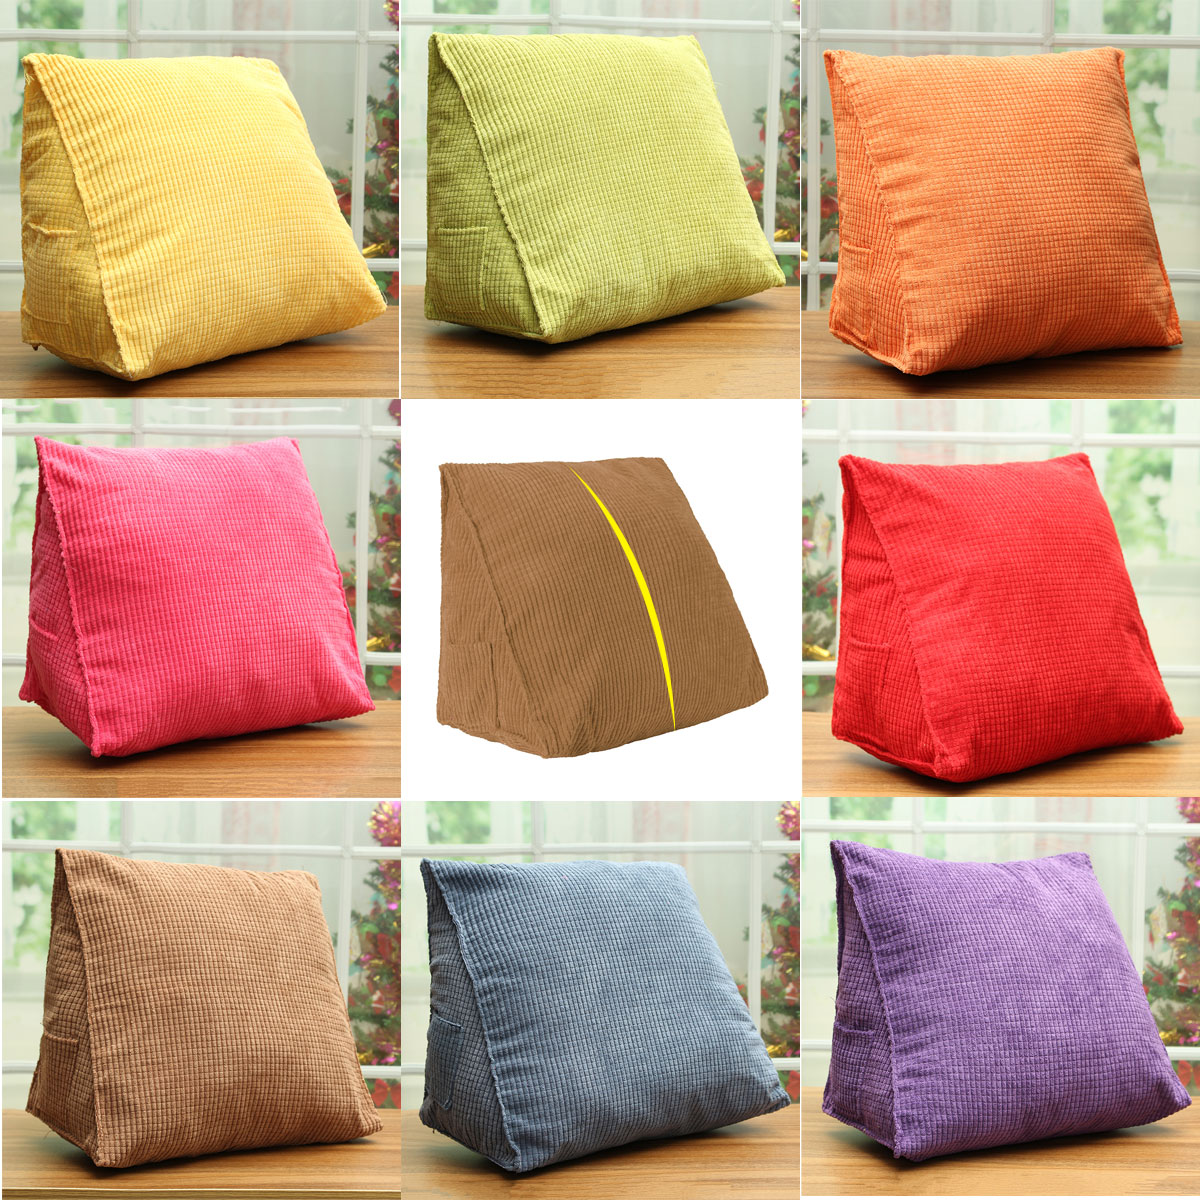 Triangle Soft Cotton backcushion Child Kids Car Seat Sofa Chair Waist Back Support Pillow Cushion Rest Pad 15''x8''x12''